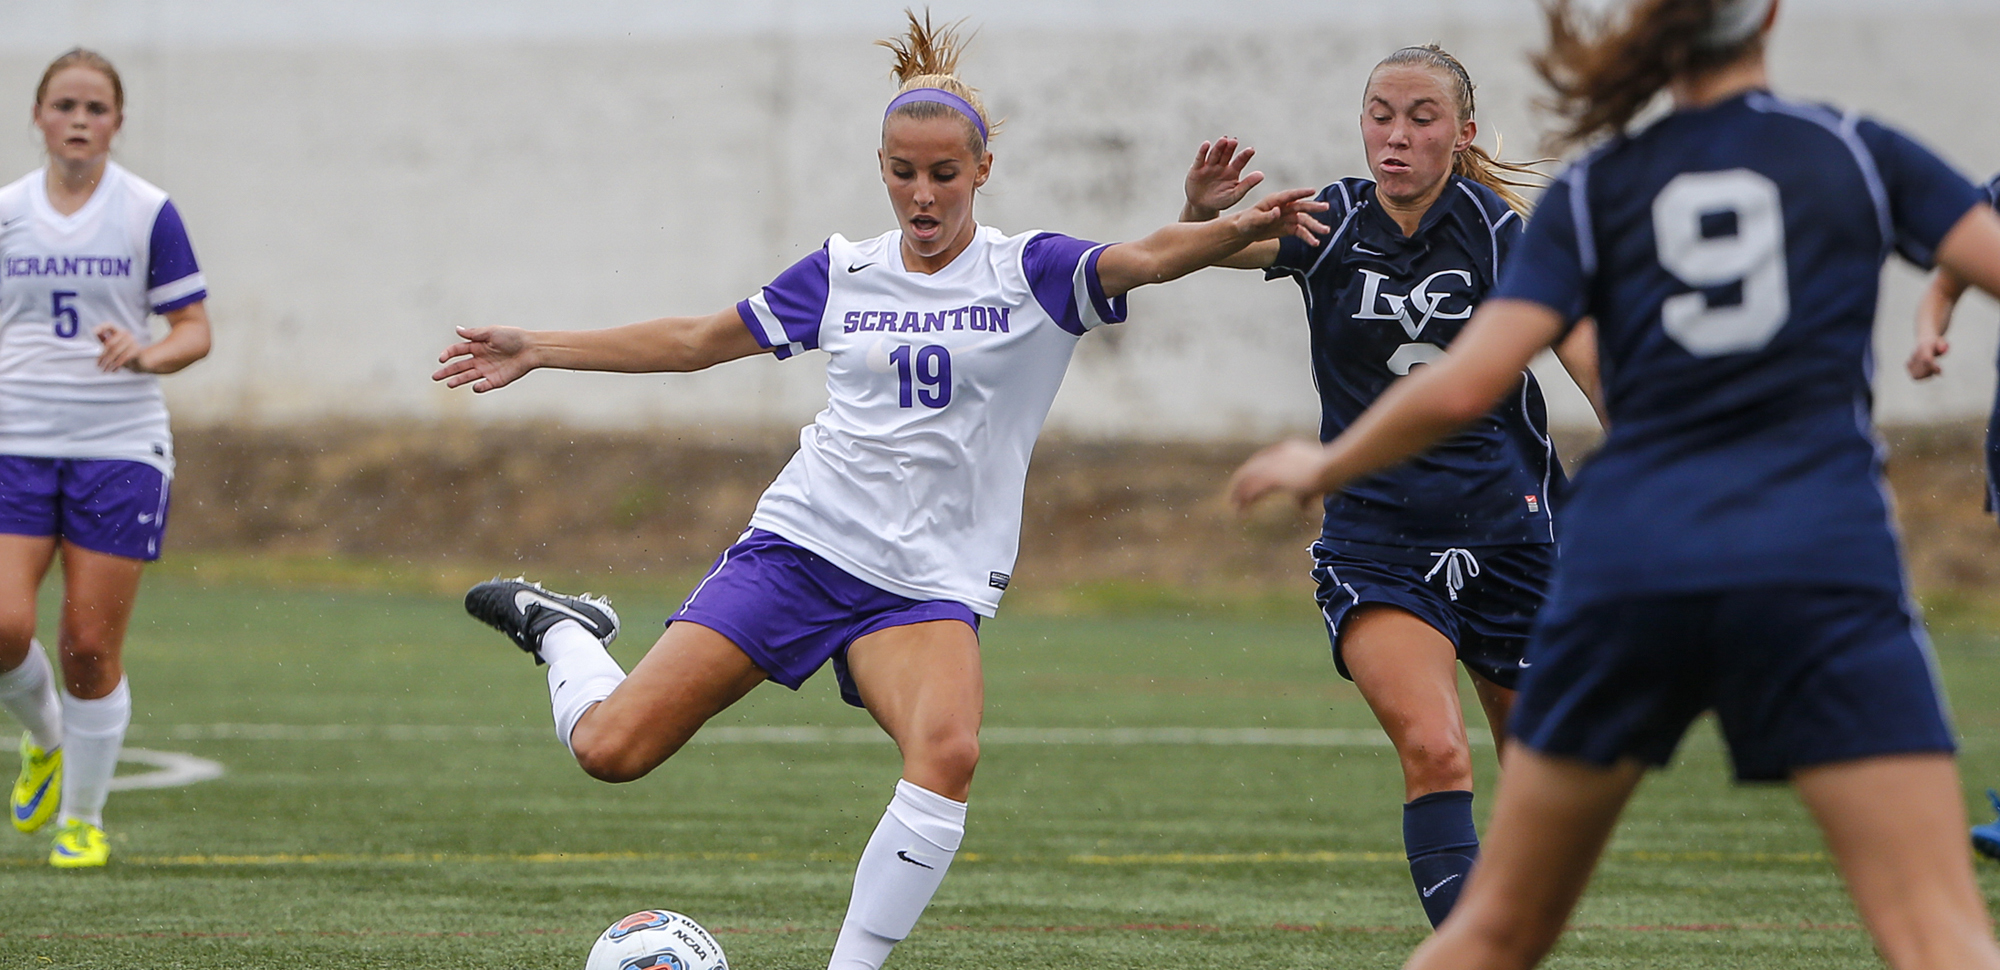 Junior Jamie Hreniuk scored her second goal in as many days in Saturday's win over Kean.